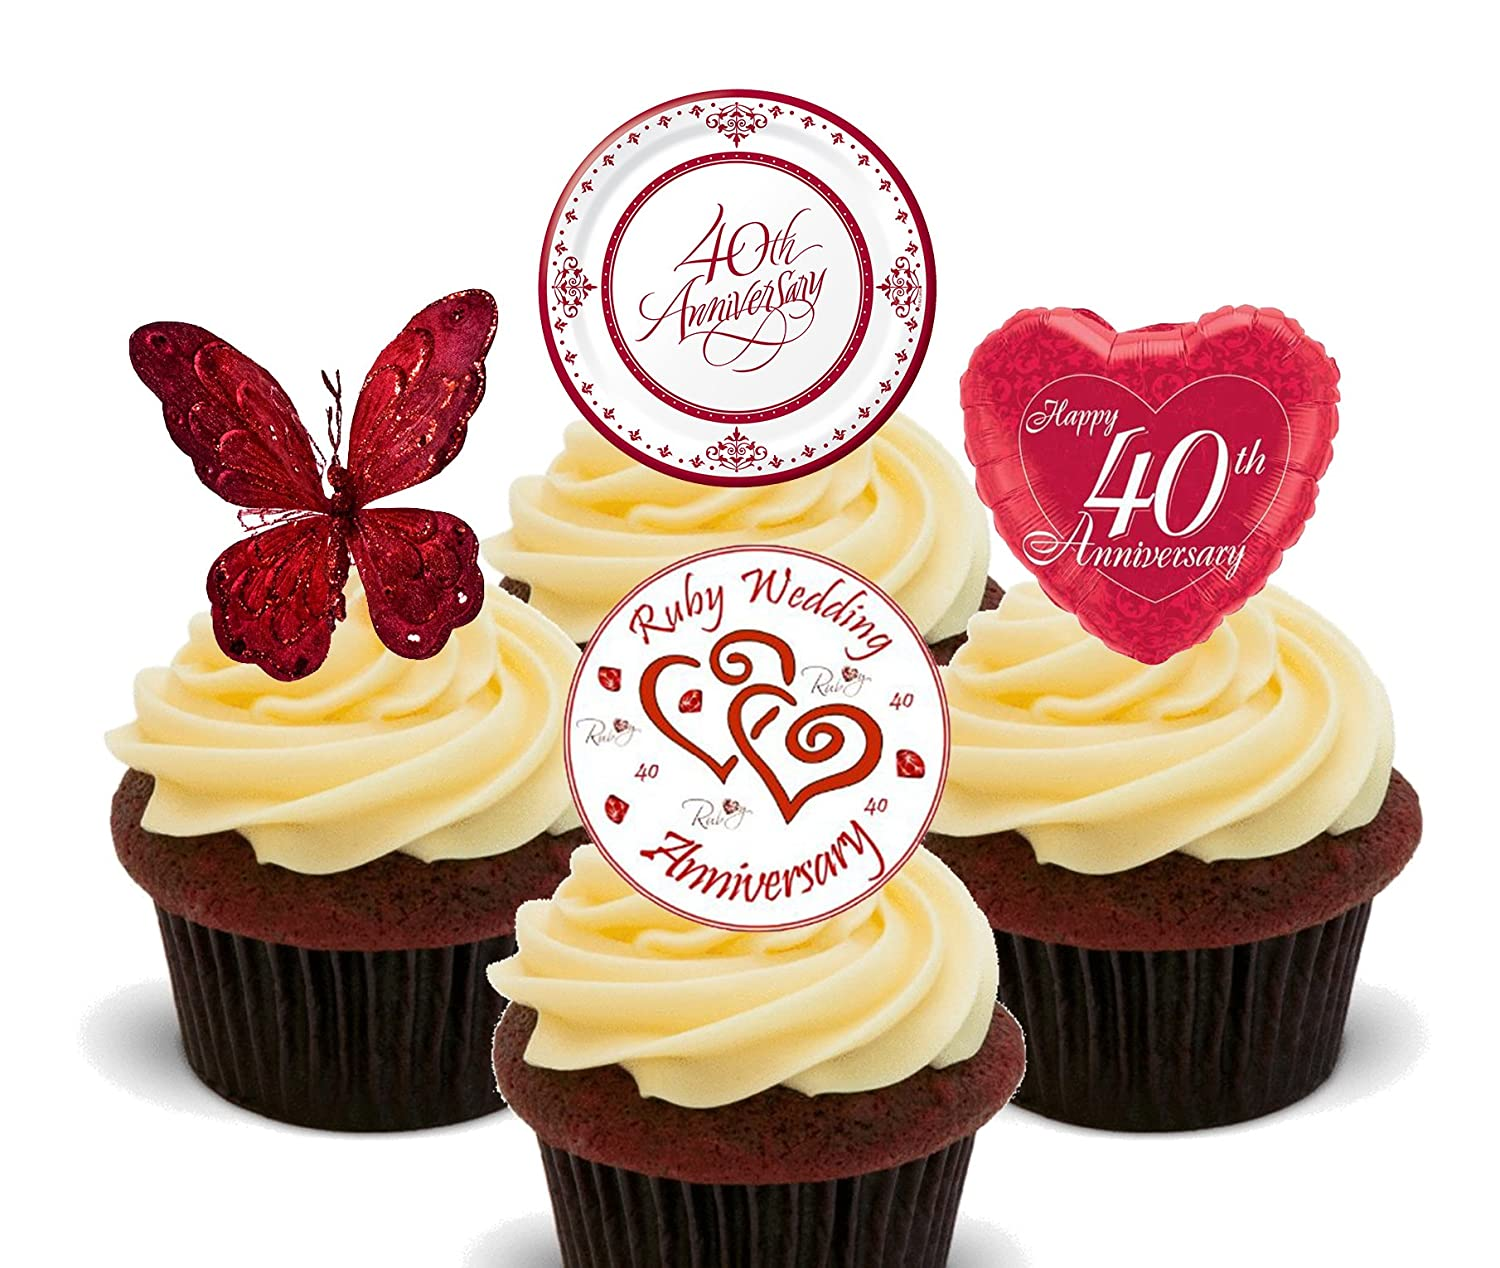 Ruby Wedding 40th Anniversary Edible Cupcake Toppers - Stand-up ...